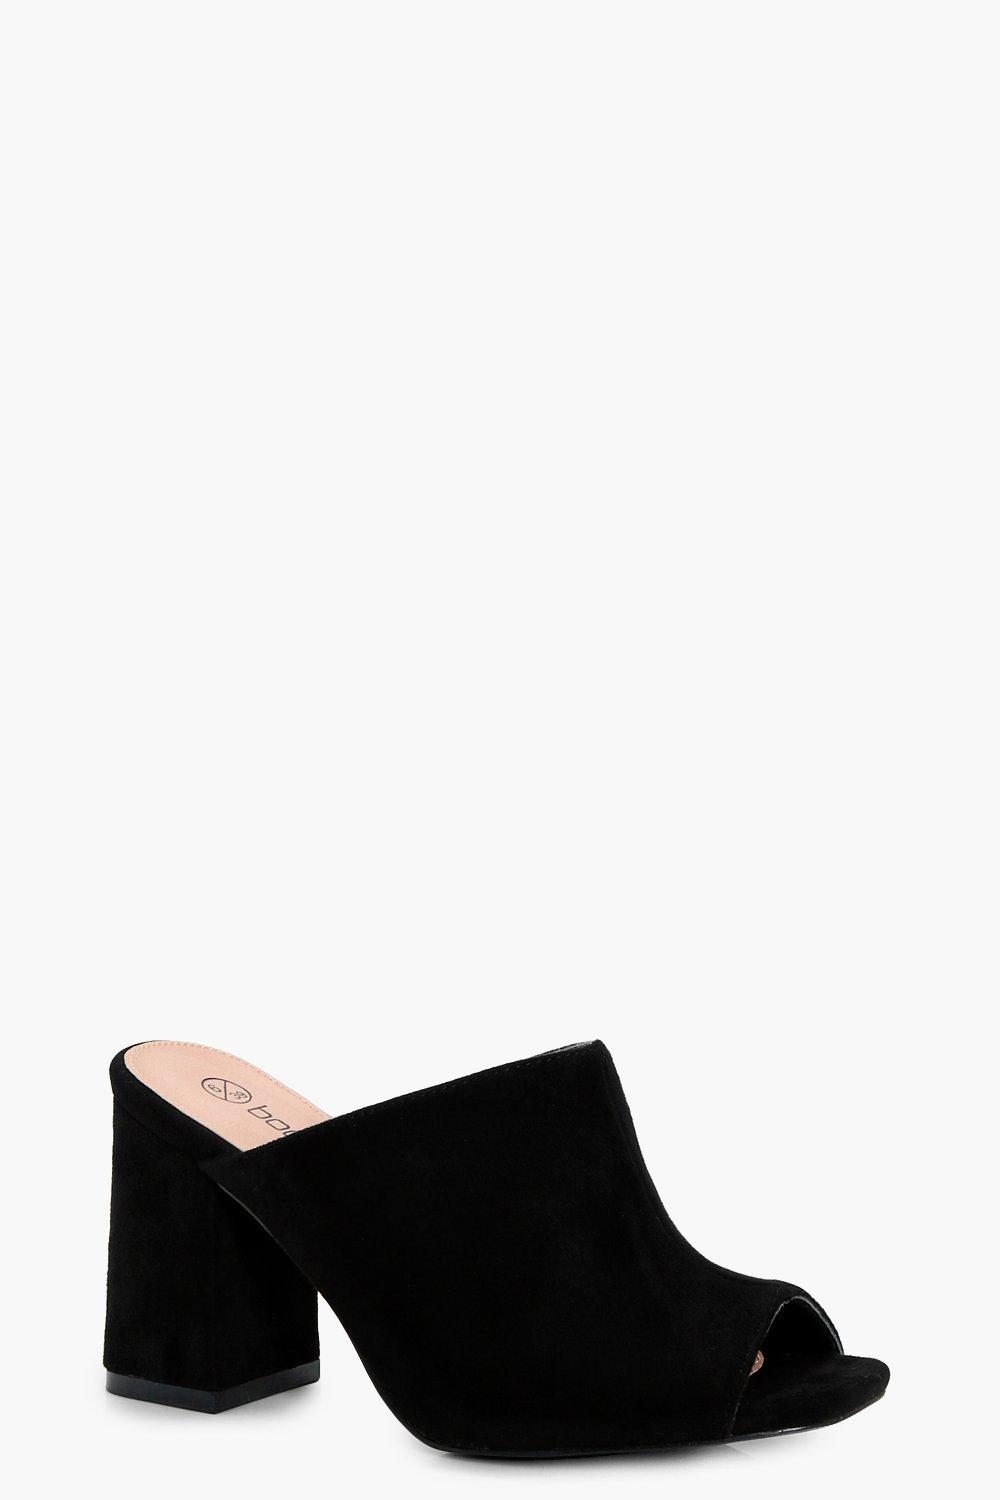 770d9bc113c2 Lottie Wide Fit Peeptoe Mules. Hover to zoom